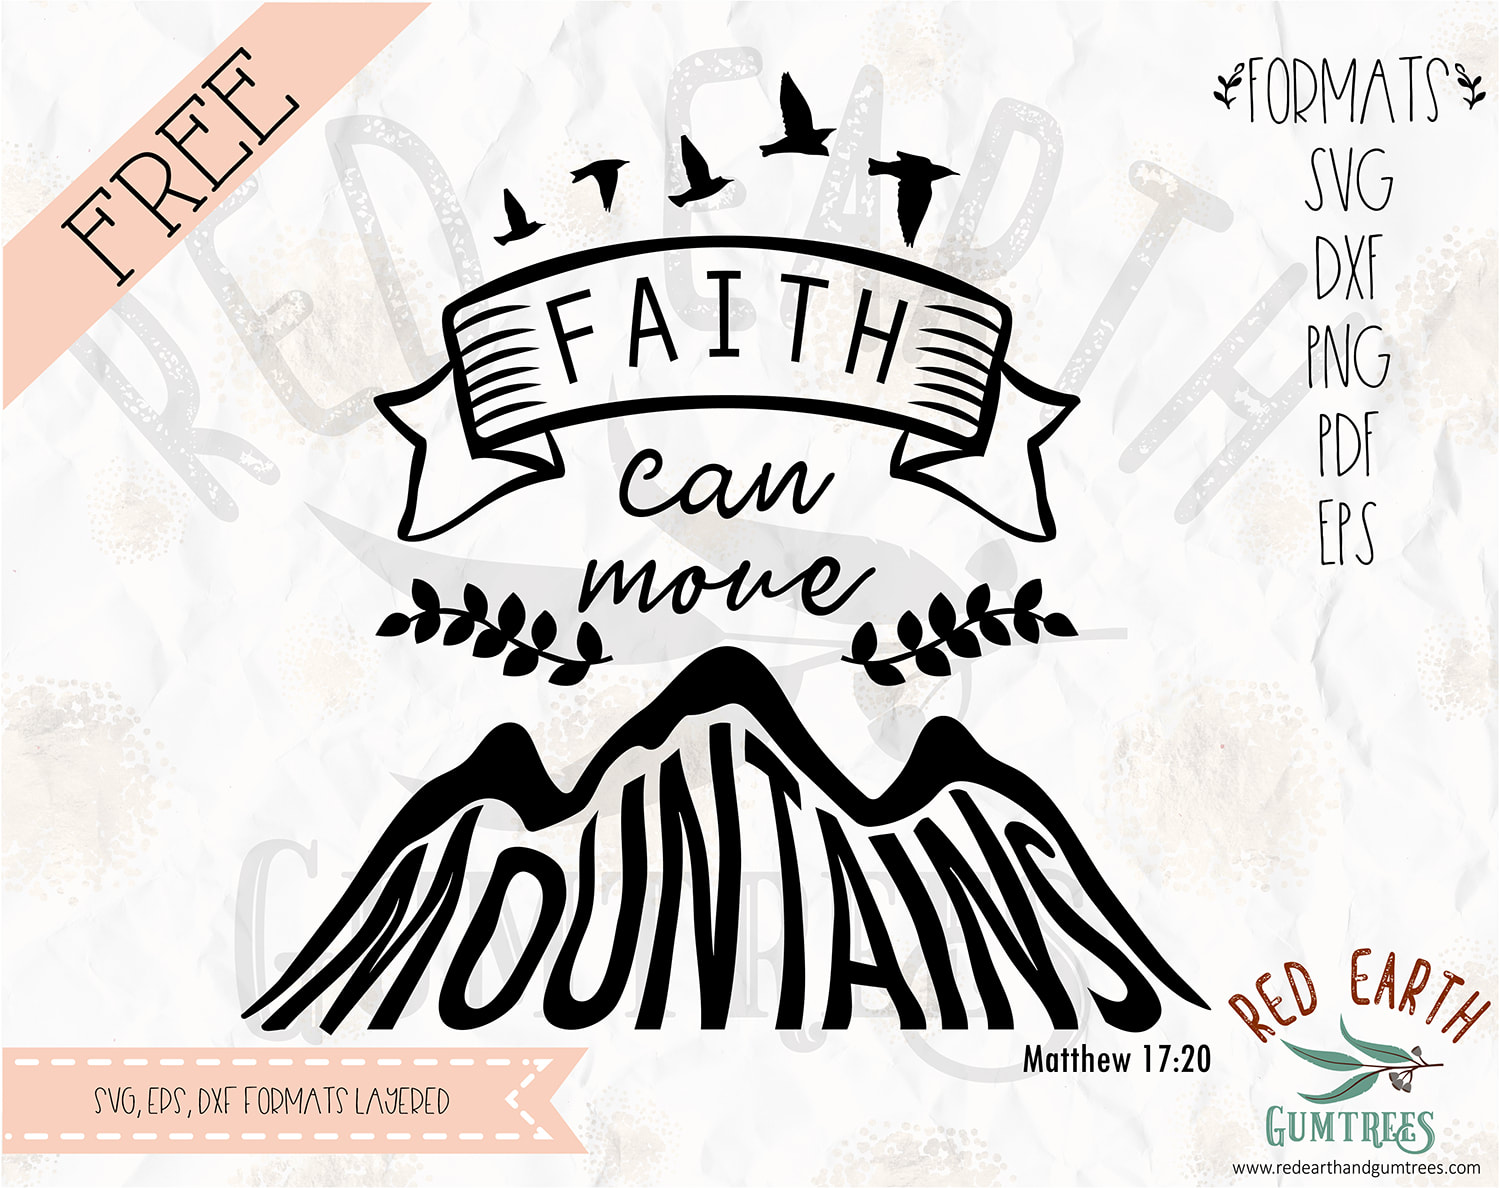 Free Faith Can Move Mountains Svg Decal In Svg Eps Pdf Dxf Png Formats Cricut Silhouette Cameo Vinyl Decal T Shirt Design Mtc Scal Iron On Vinyl Heat Transfer Vinyl